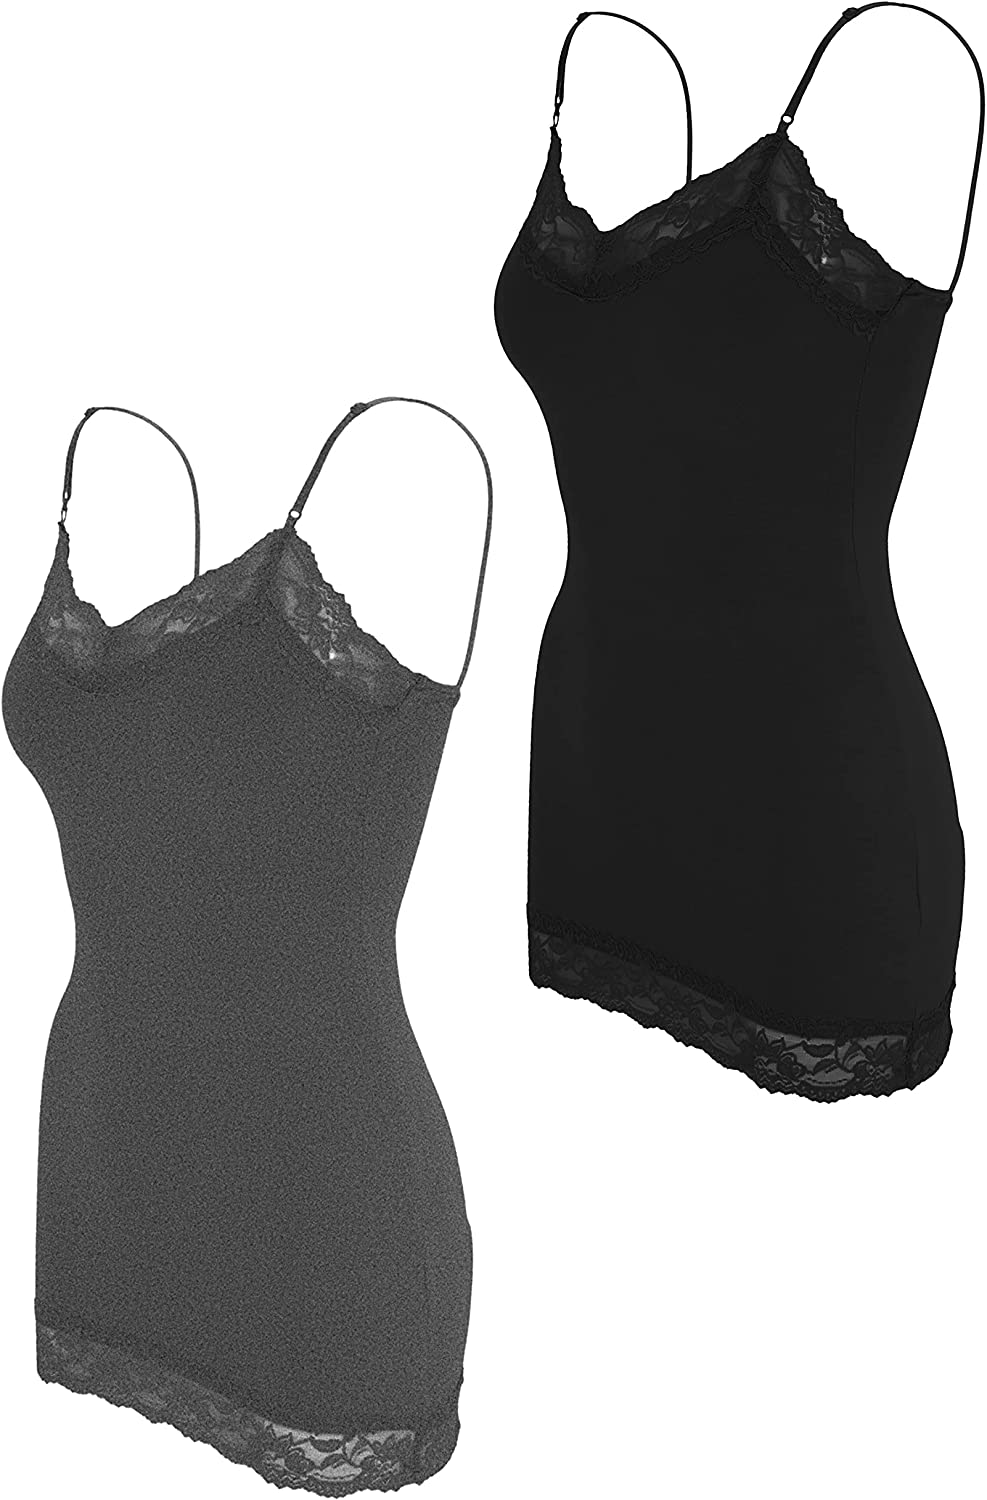 ClothingAve. Women's Lace Trim V-Neck Camisole Loungewear Undershirt Tank Top | Soft and Comfy | Value-Pack Available